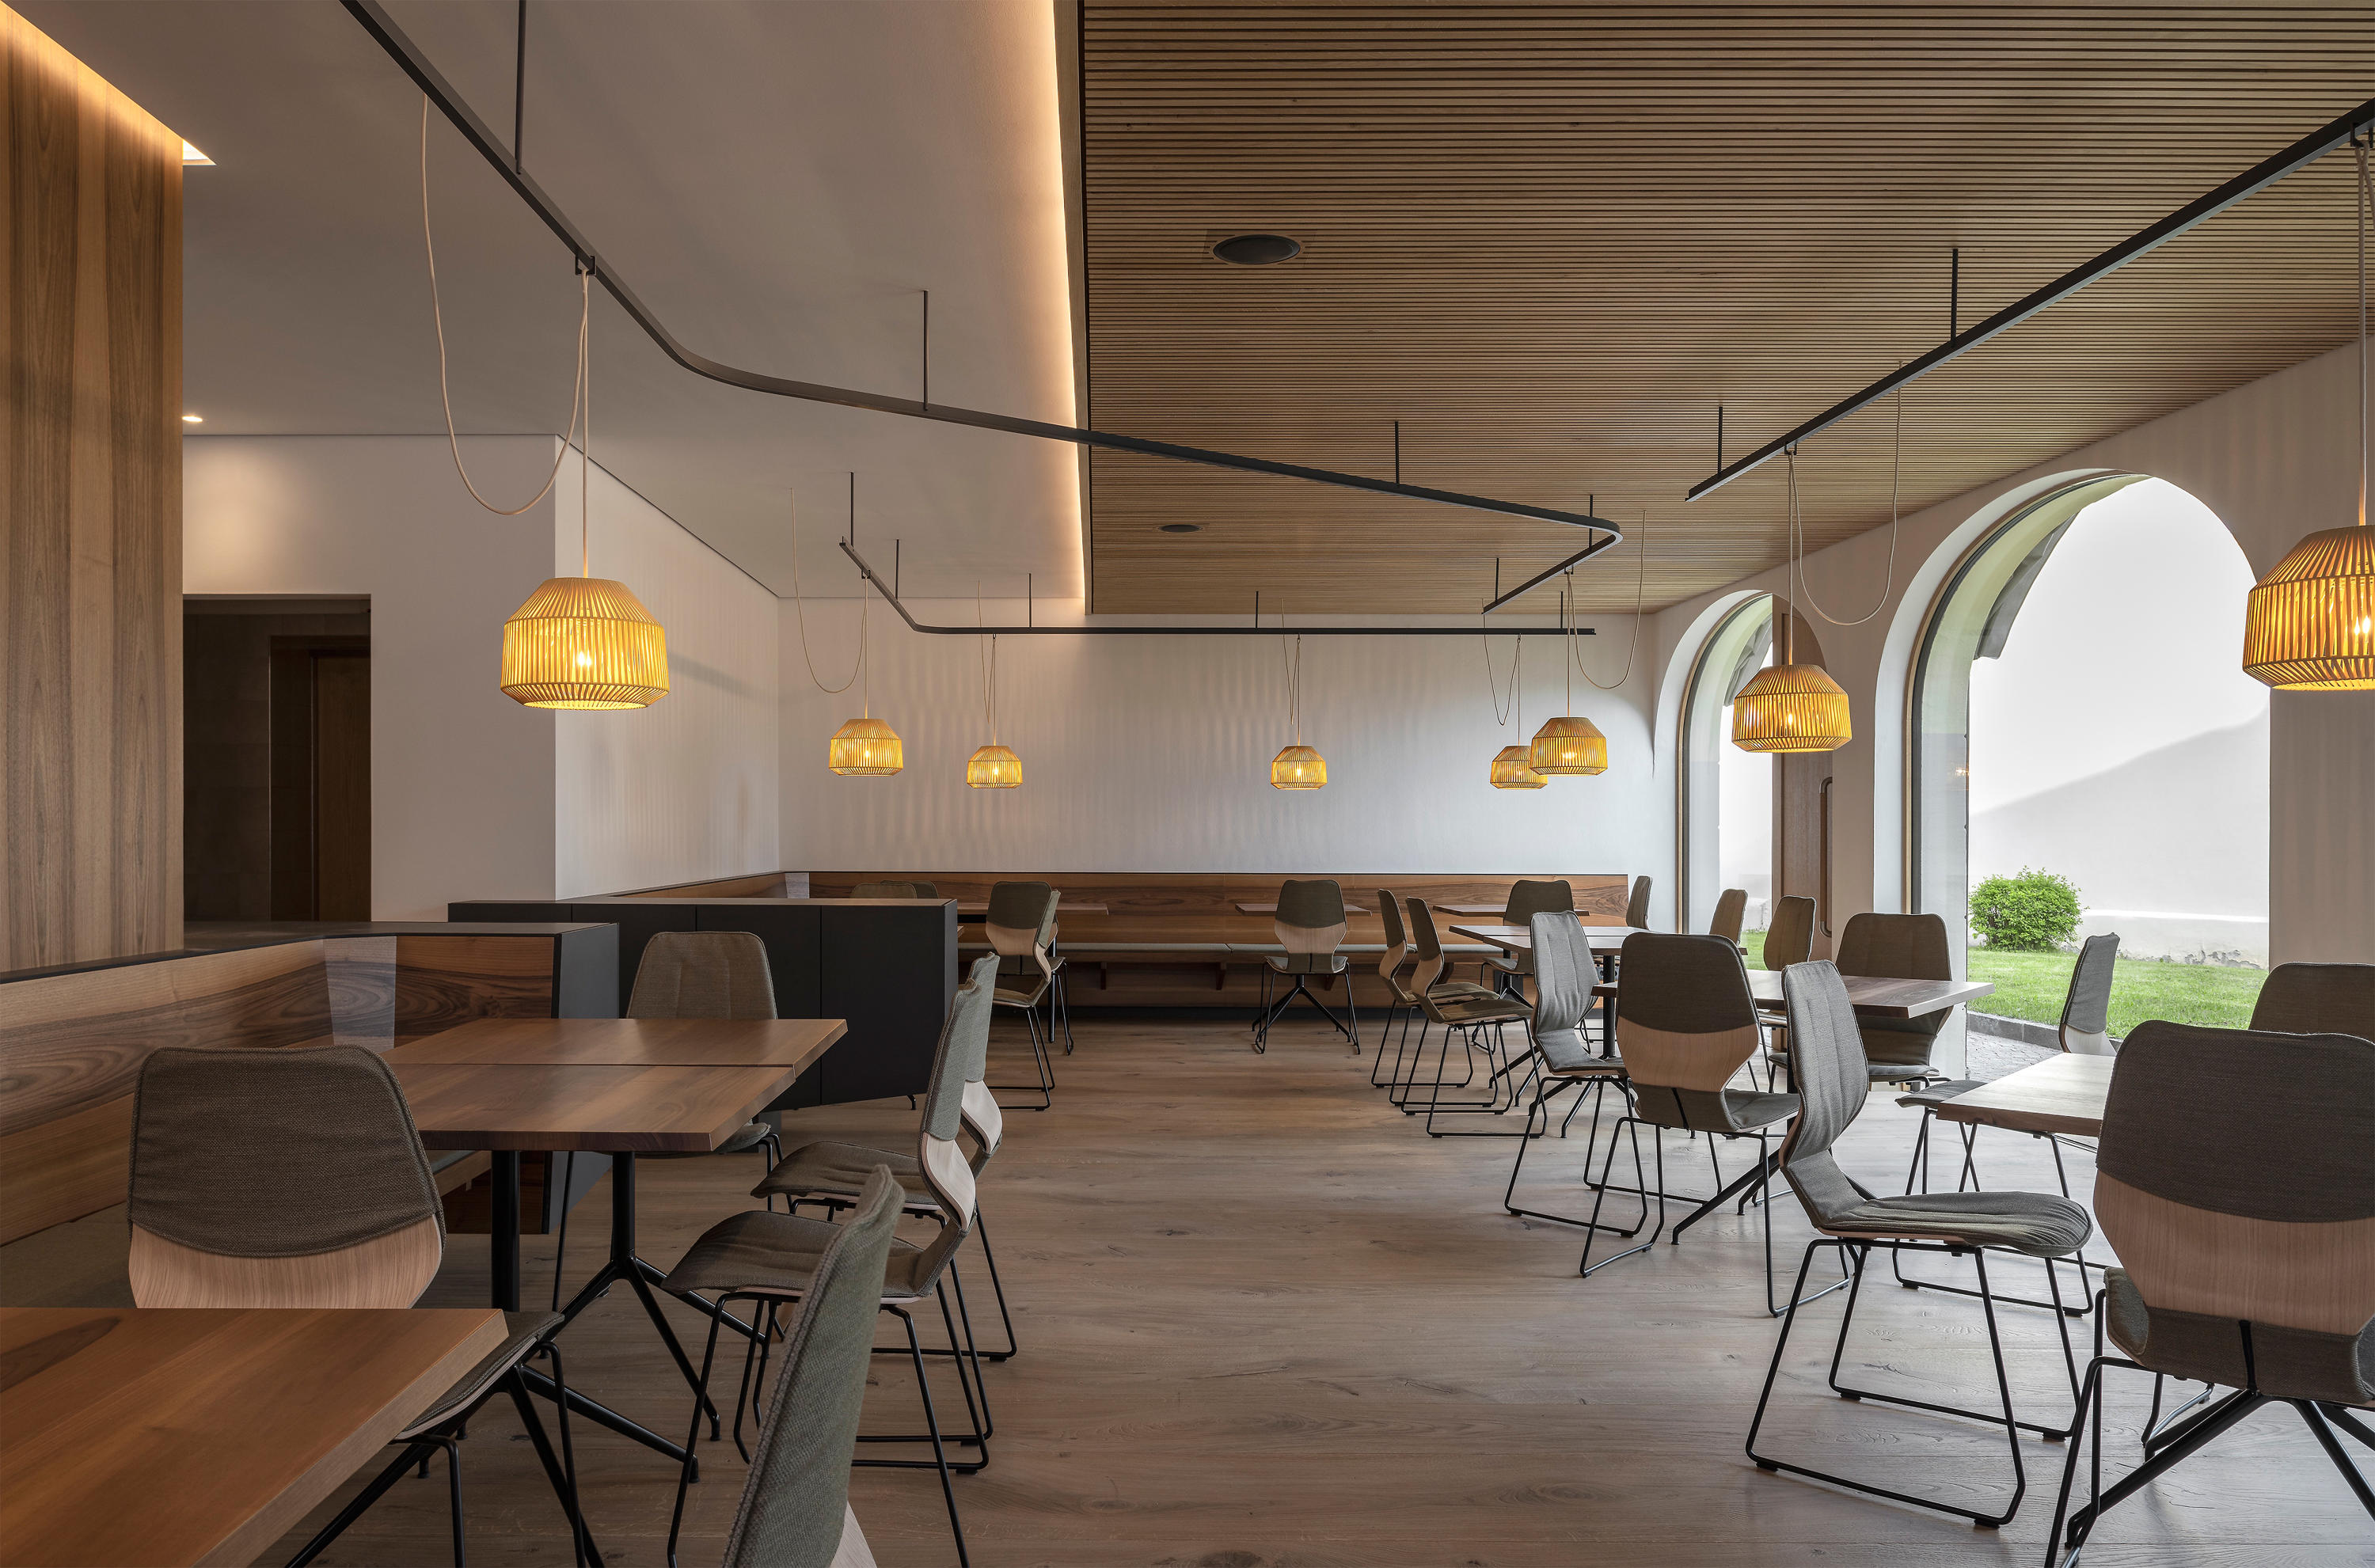 Zentral Cafe Restaurant By Messner Architects Cafe Interiors